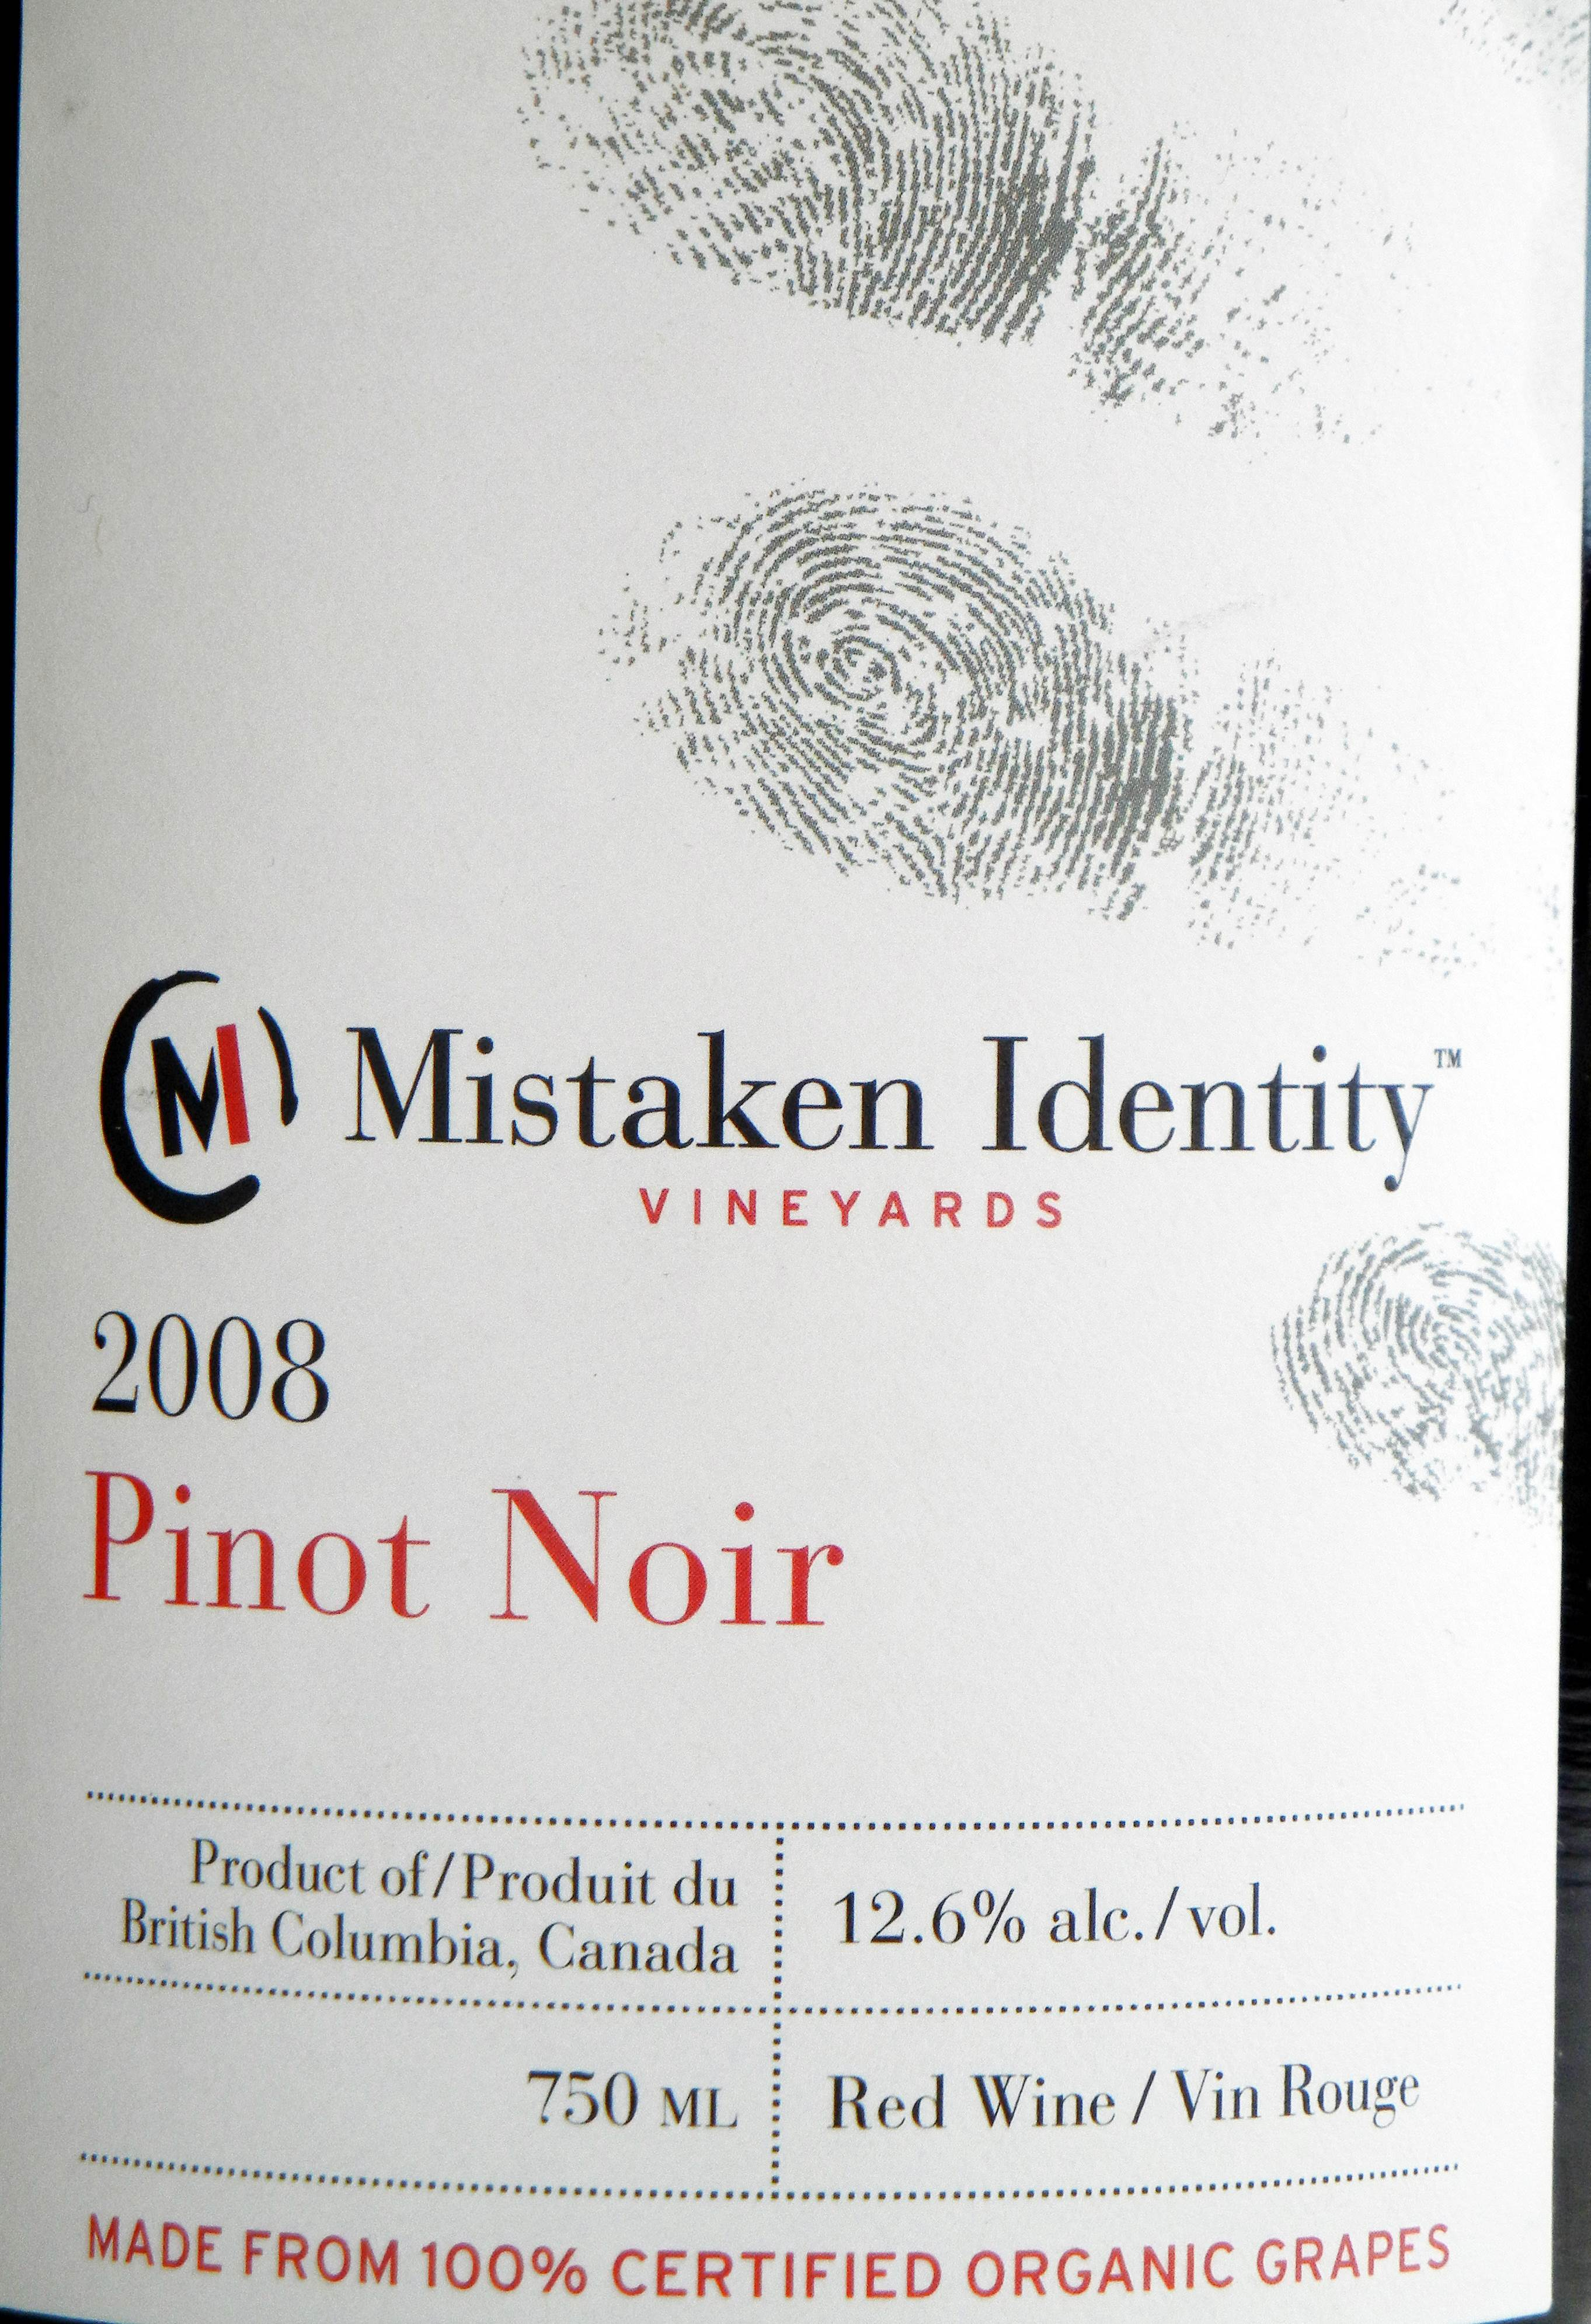 Mistaken Identity Pinot Noir 2008 Label - BC Pinot Noir Tasting Review 16